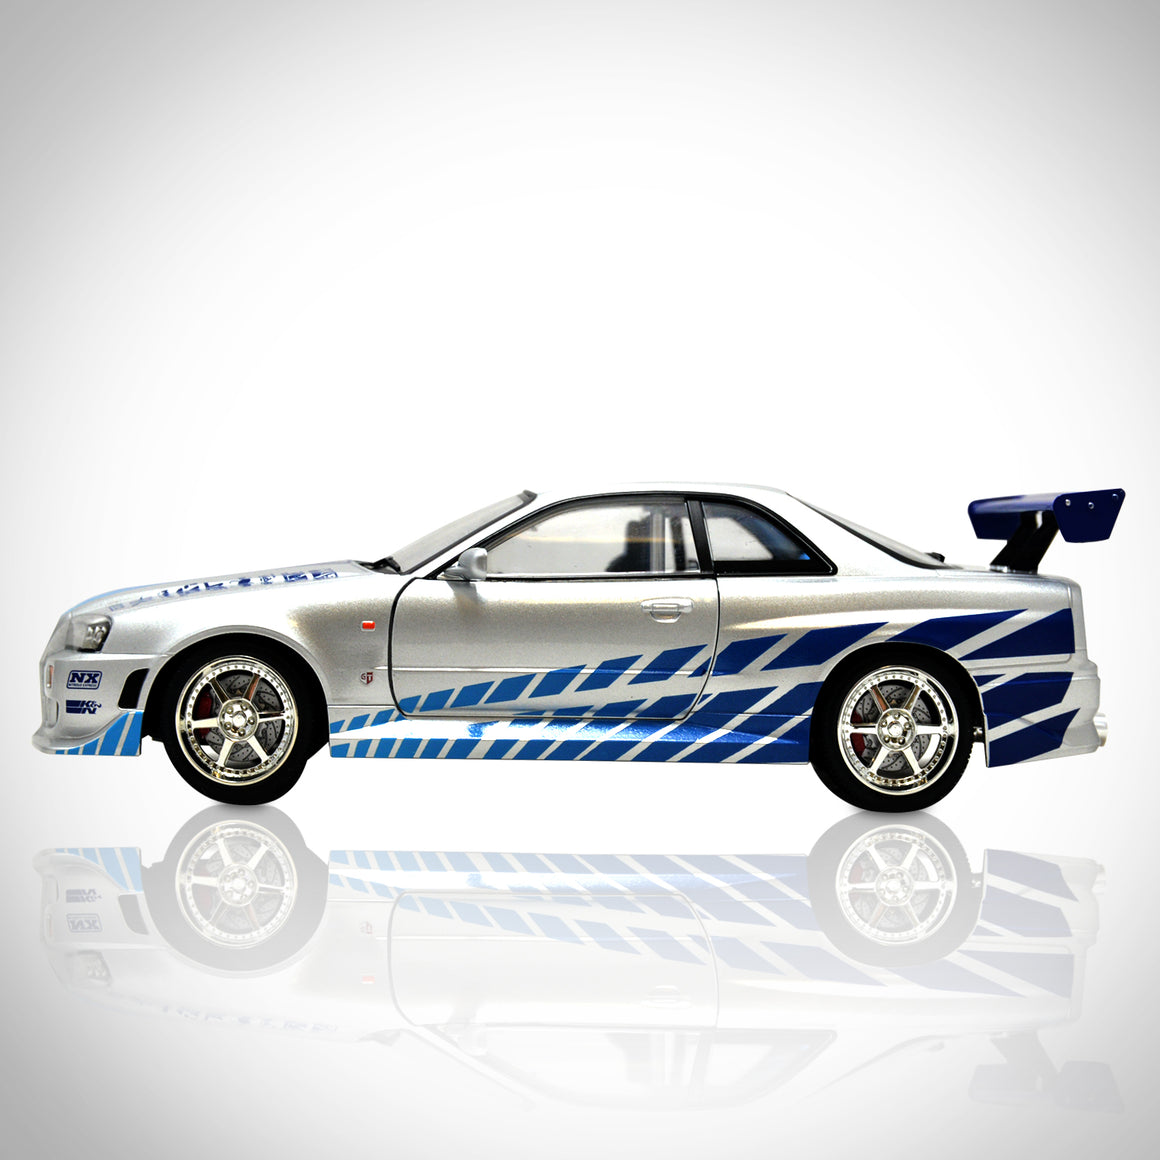 FAST & FURIOUS - BRIAN'S 1999 NISSAN SKYLINE Exclusive Elite Edition 1/18 Die-Cast Car Display Set